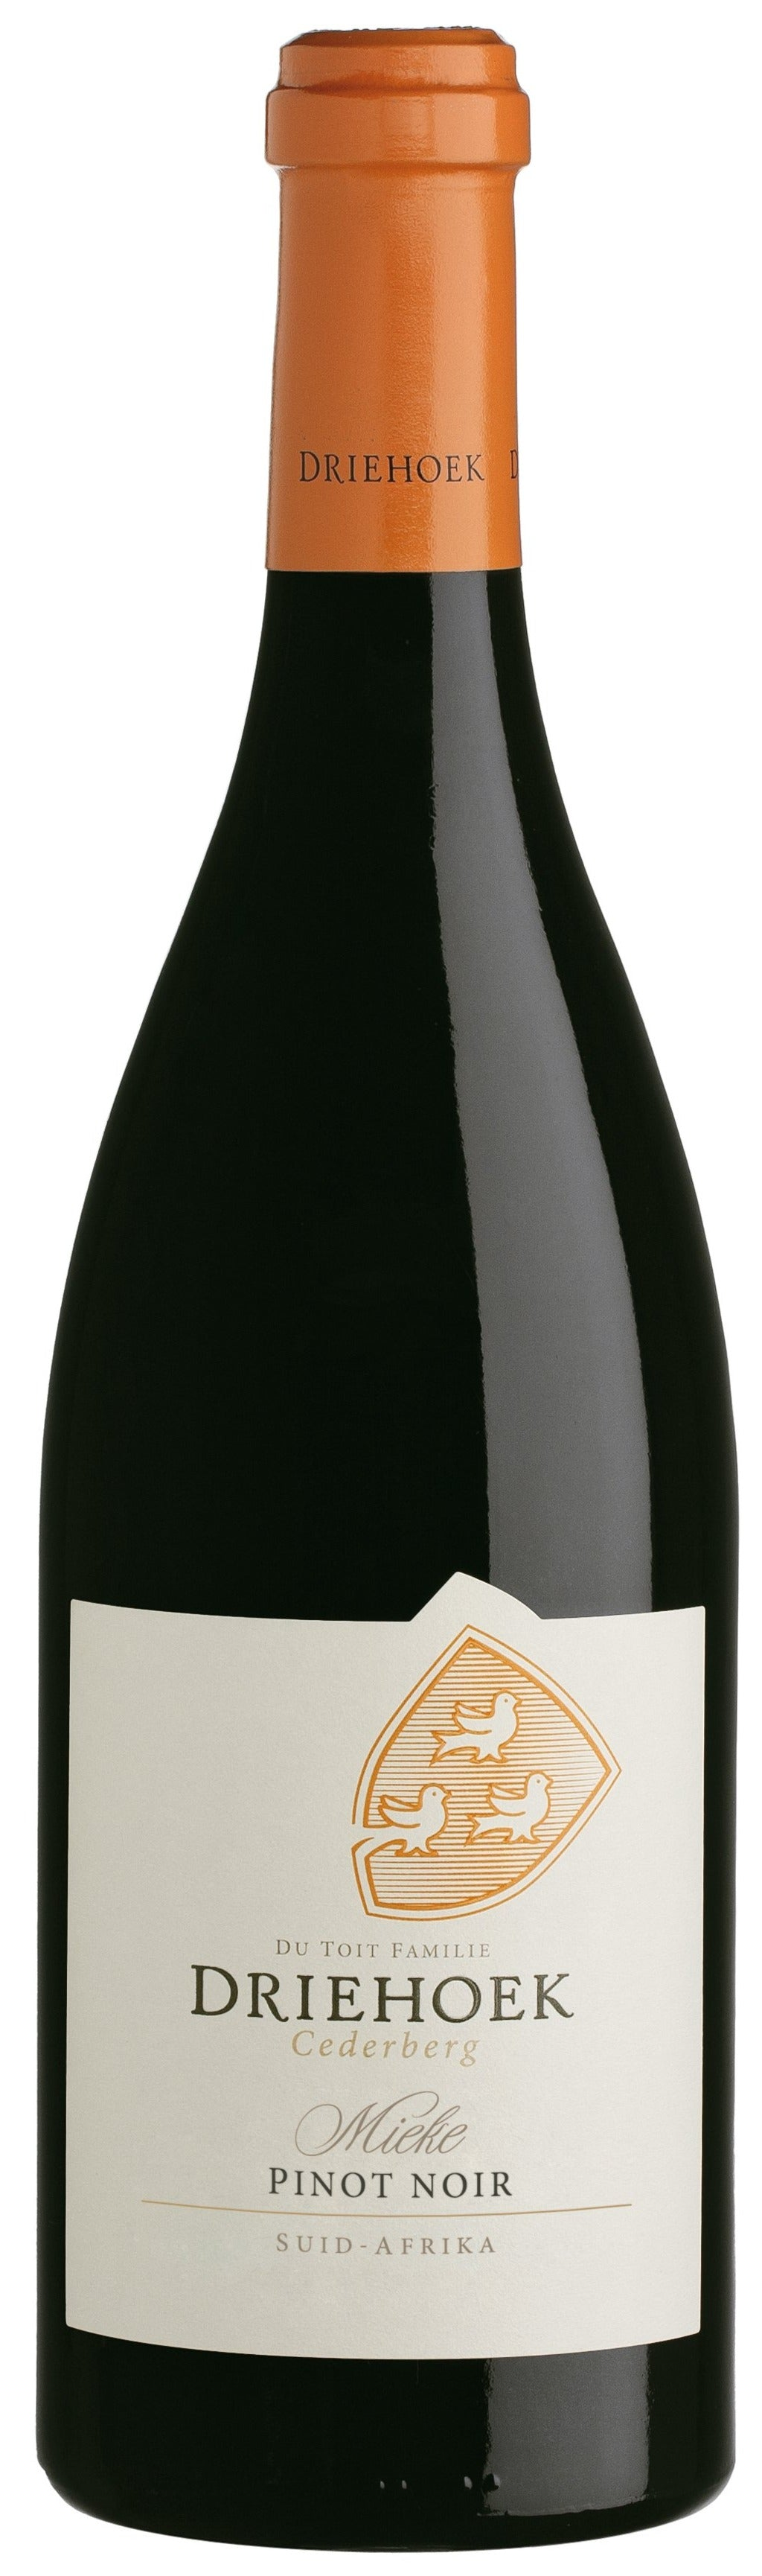 DRIEHOEK Pinot Noir 750ml - Together Store South Africa